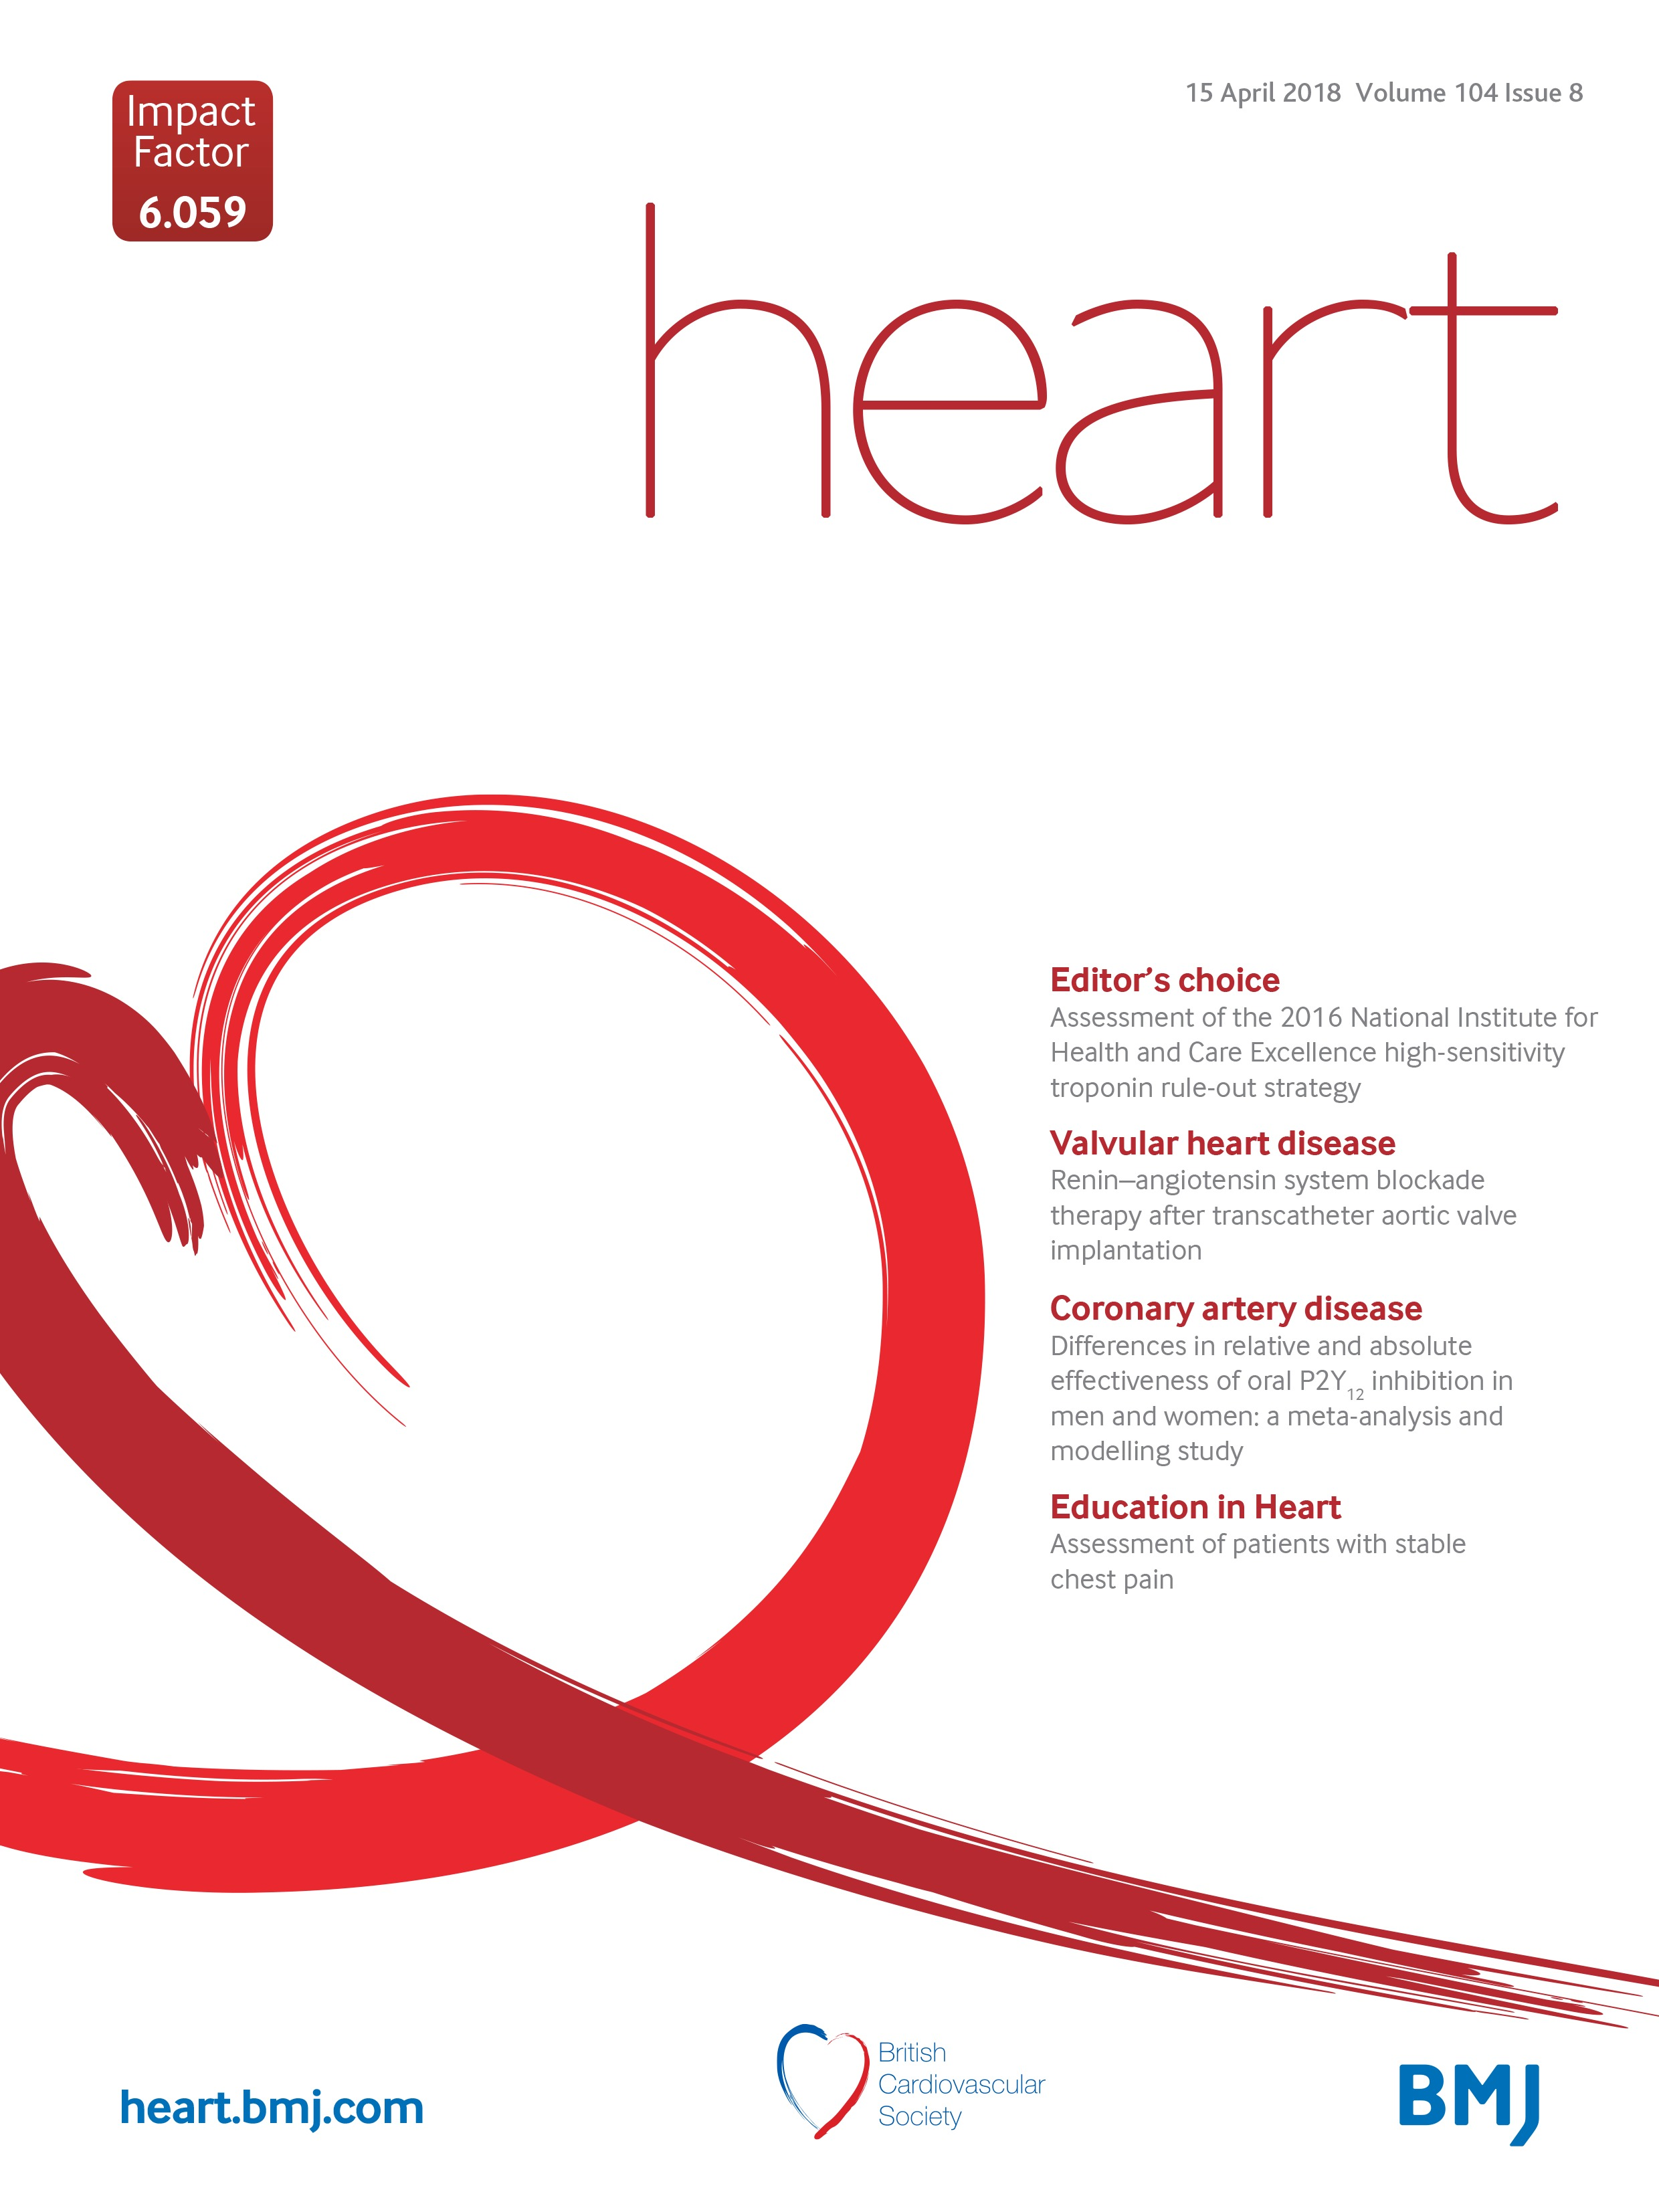 increased coronary heart disease and stroke hospitalisations from